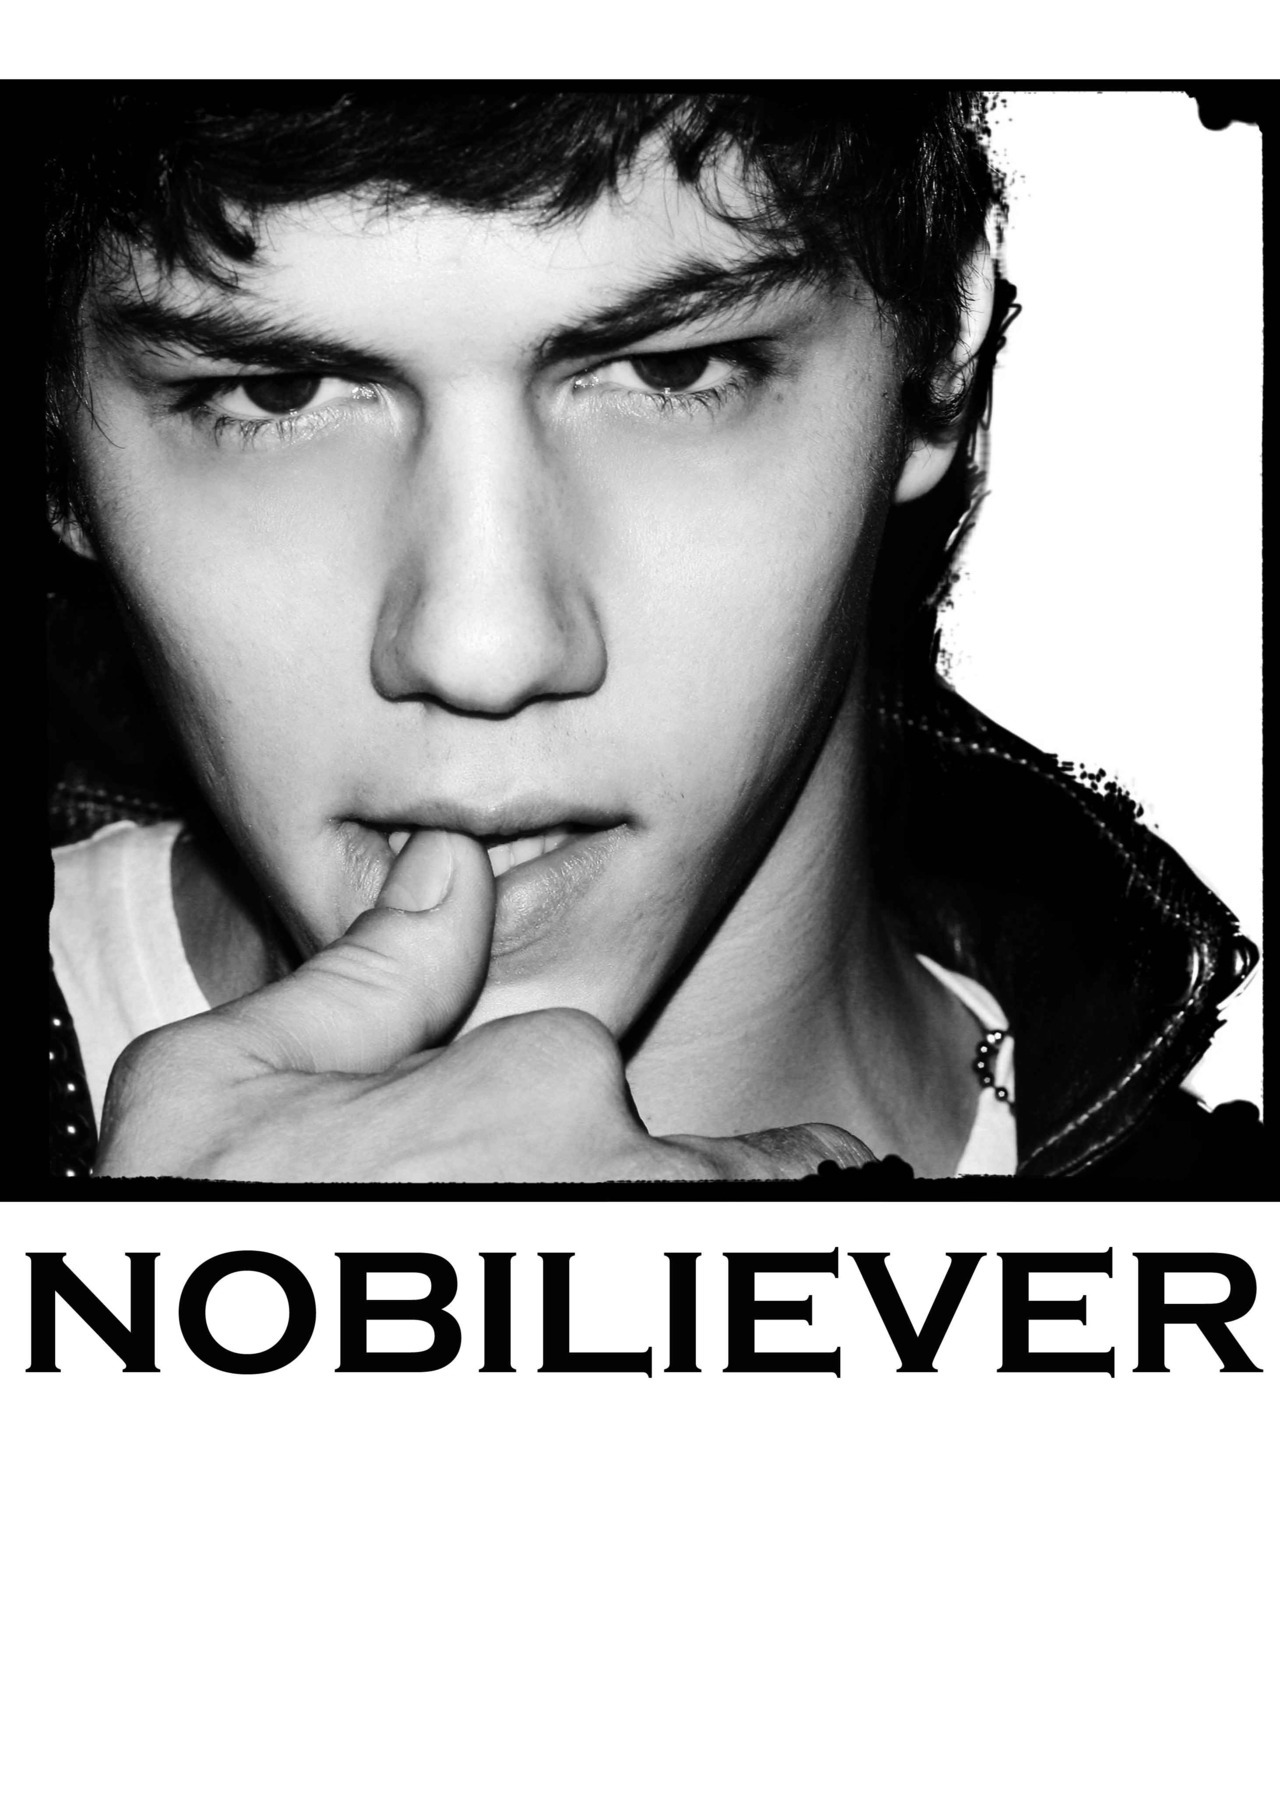 we're working on a semi-delirious Simone Nobili fanclub concept, the fans will be called NOBILIEVERS, and here's a draft for our first t-shirt ( we're such silly teens sometimes)